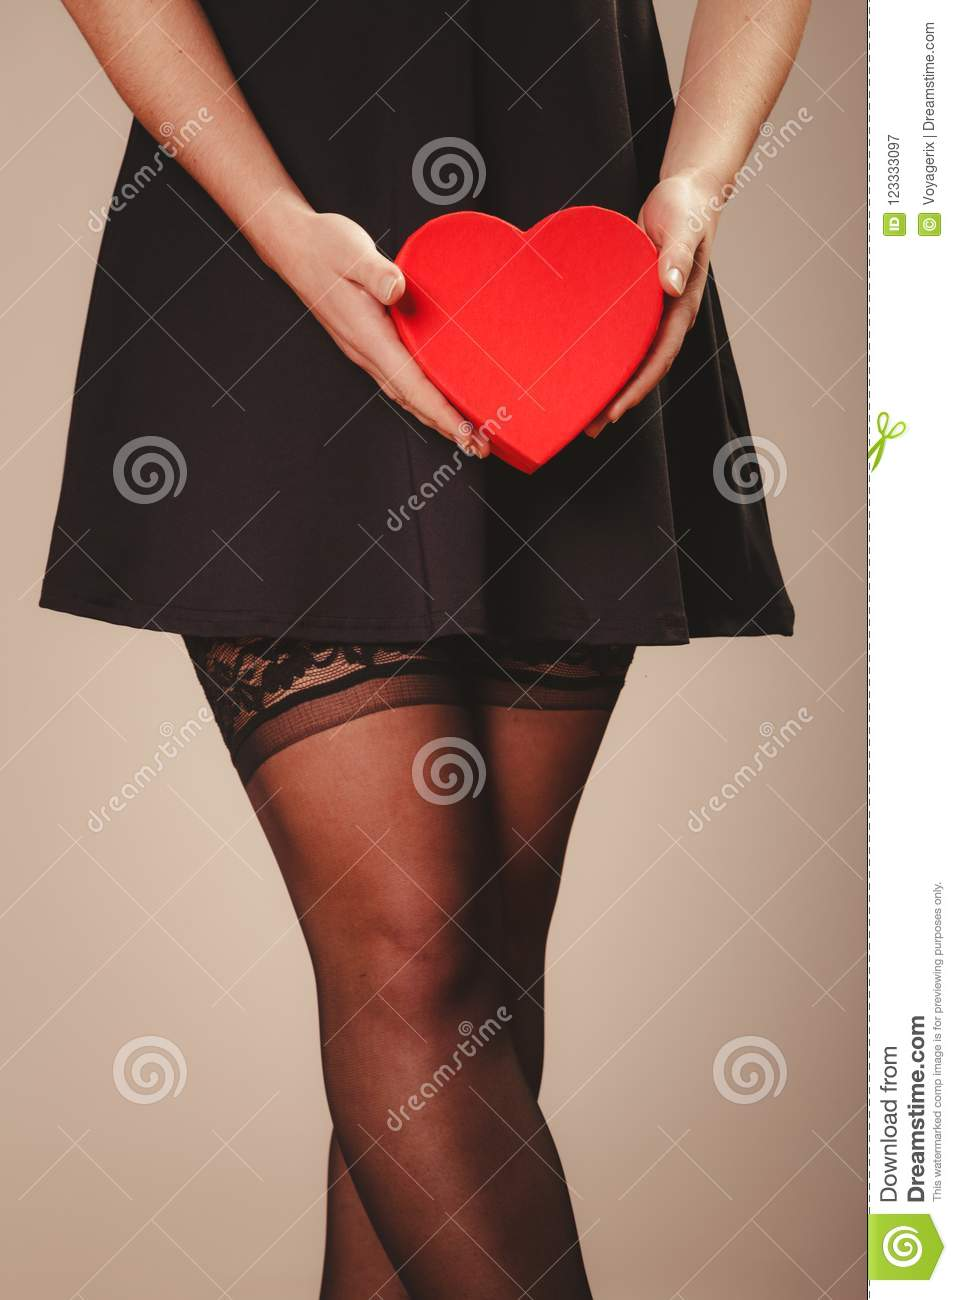 3a8cda899 Woman hands holding heart stock image. Image of sexuality - 123333097